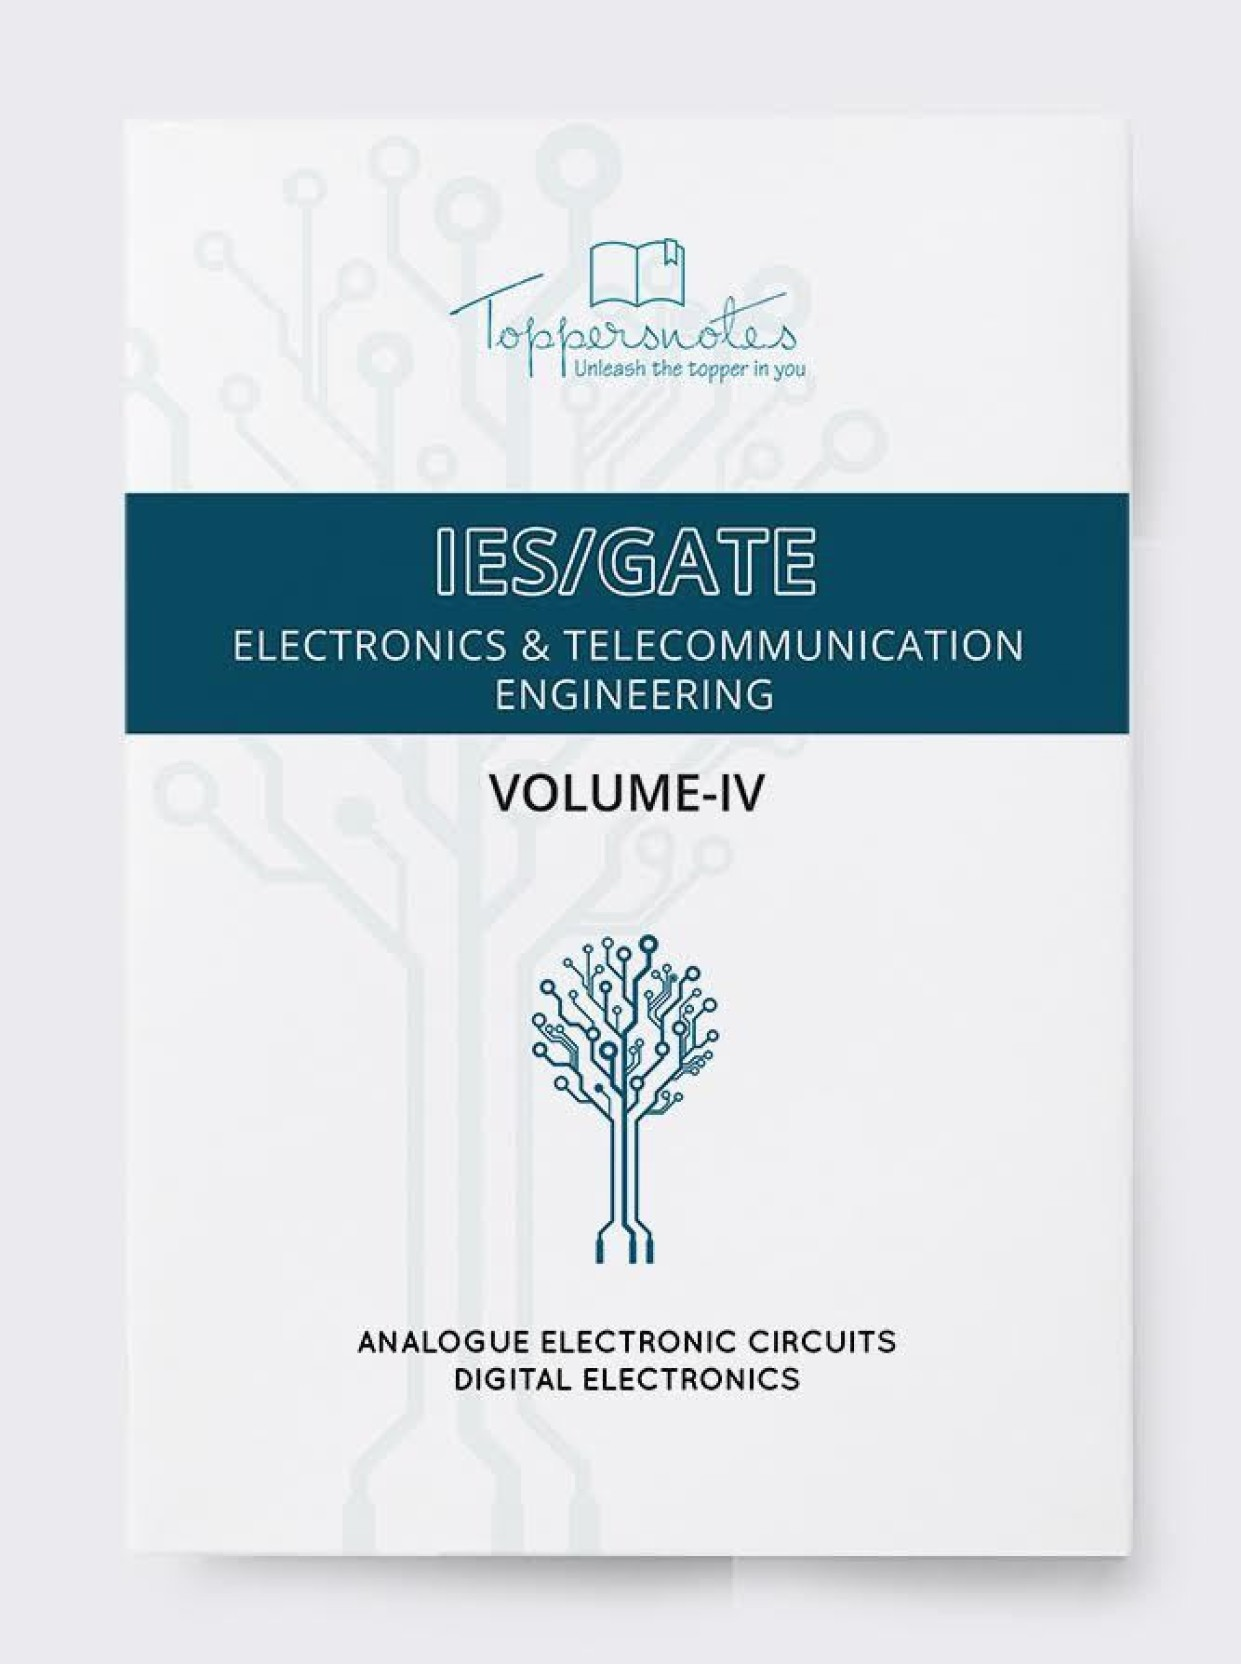 Ies Gate Hand Written Notes Analogue Electronic Circuits Digital Electronics For You On Offer